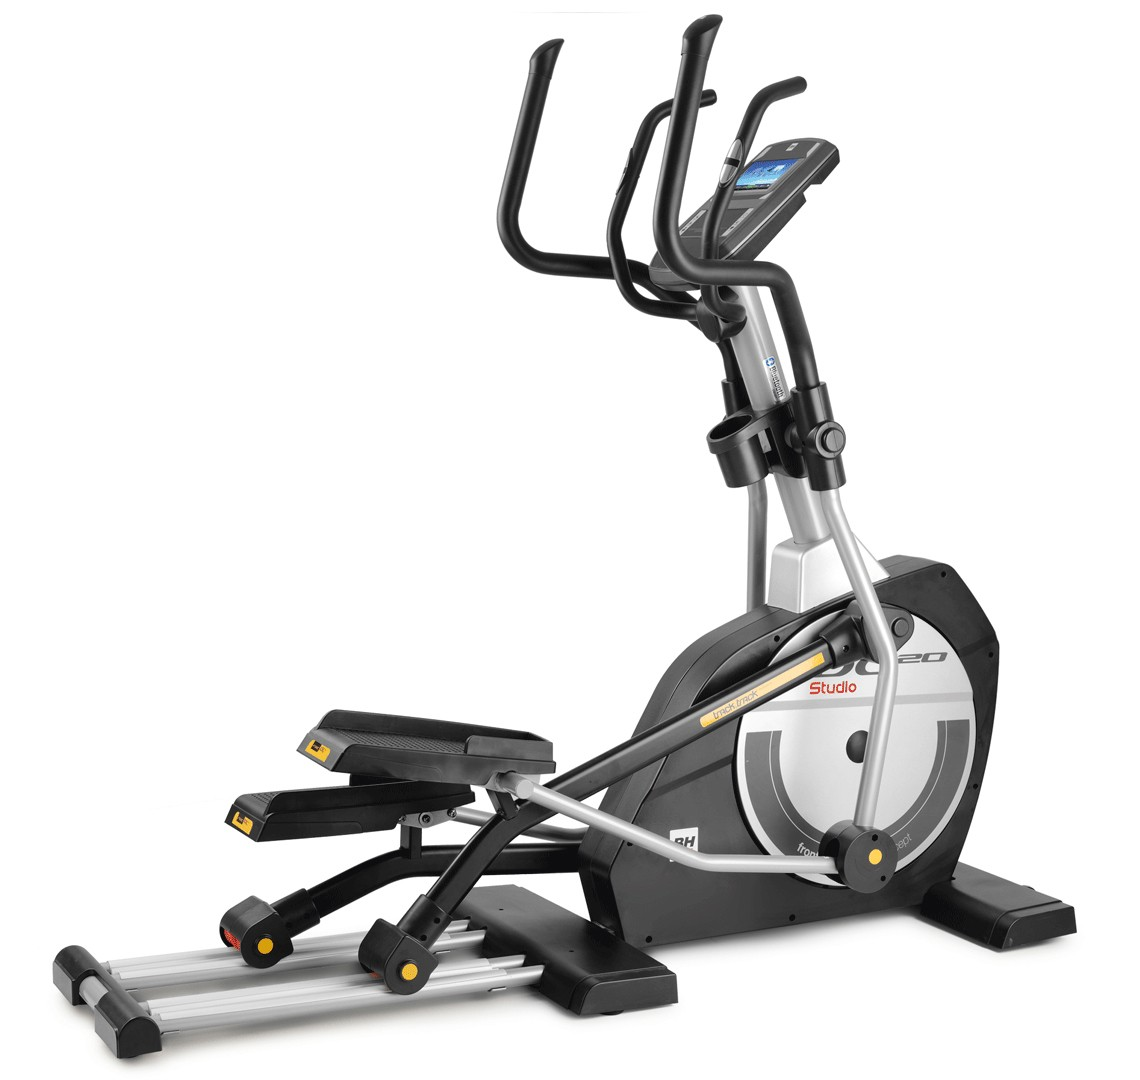 BH Fitness I.FDC 20 Studio WG868 Elliptical Cross Trainer